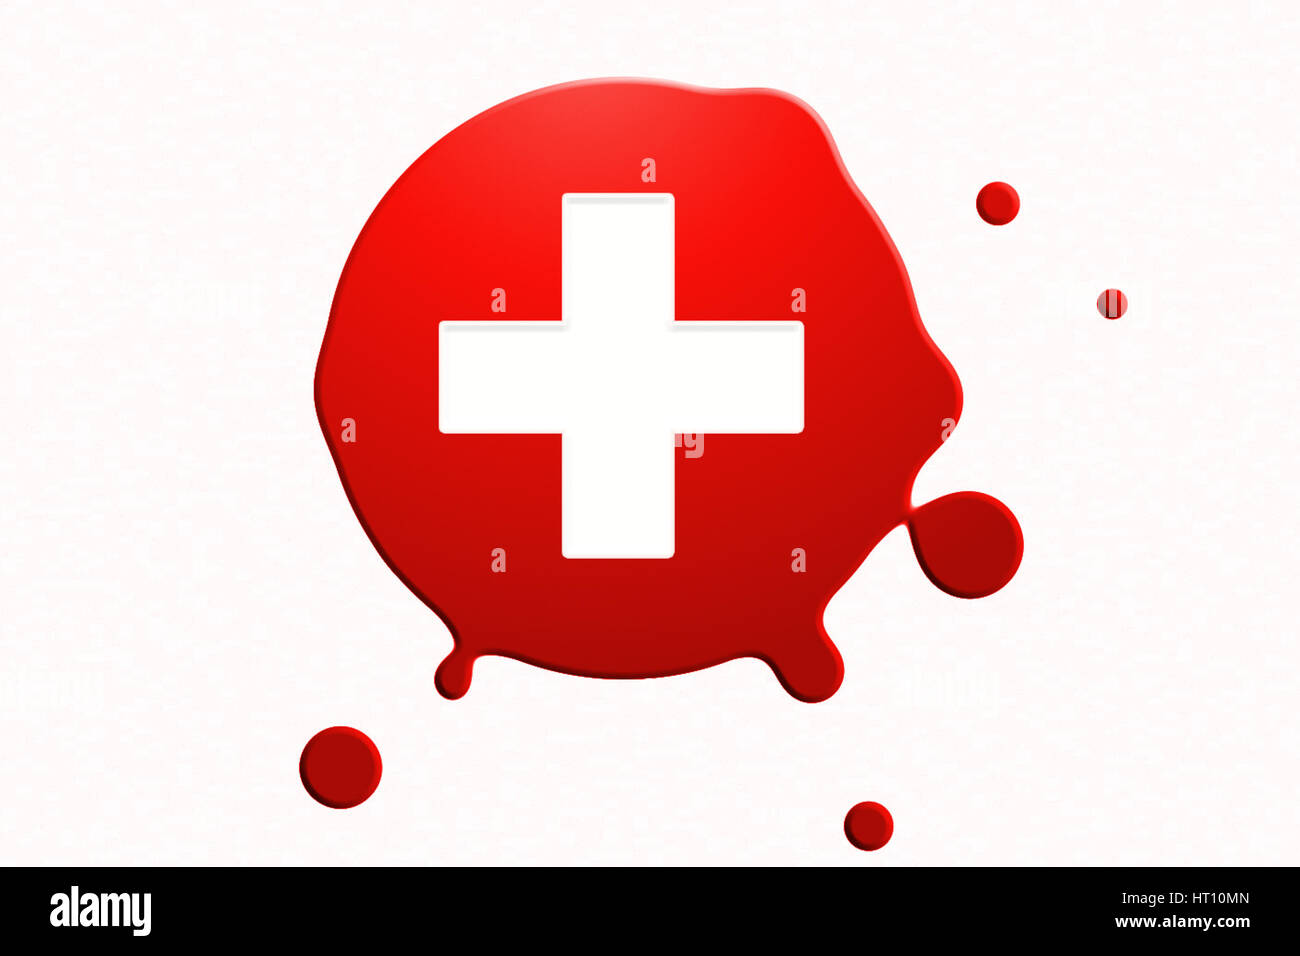 blood drop with white cross - Stock Image